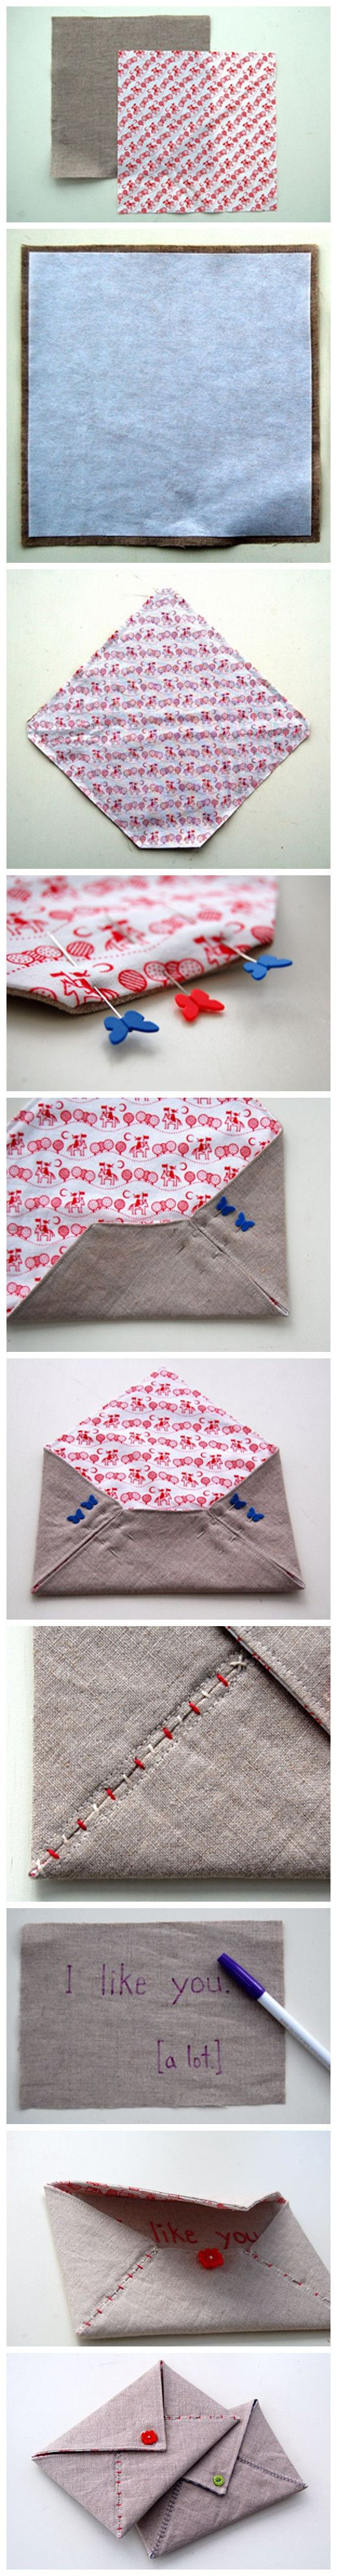 DIY: fabric envelope: Ideas, Sewing, Stitched Envelope, Craft, Gift, Fabrics, Diy, Fabric Envelopes